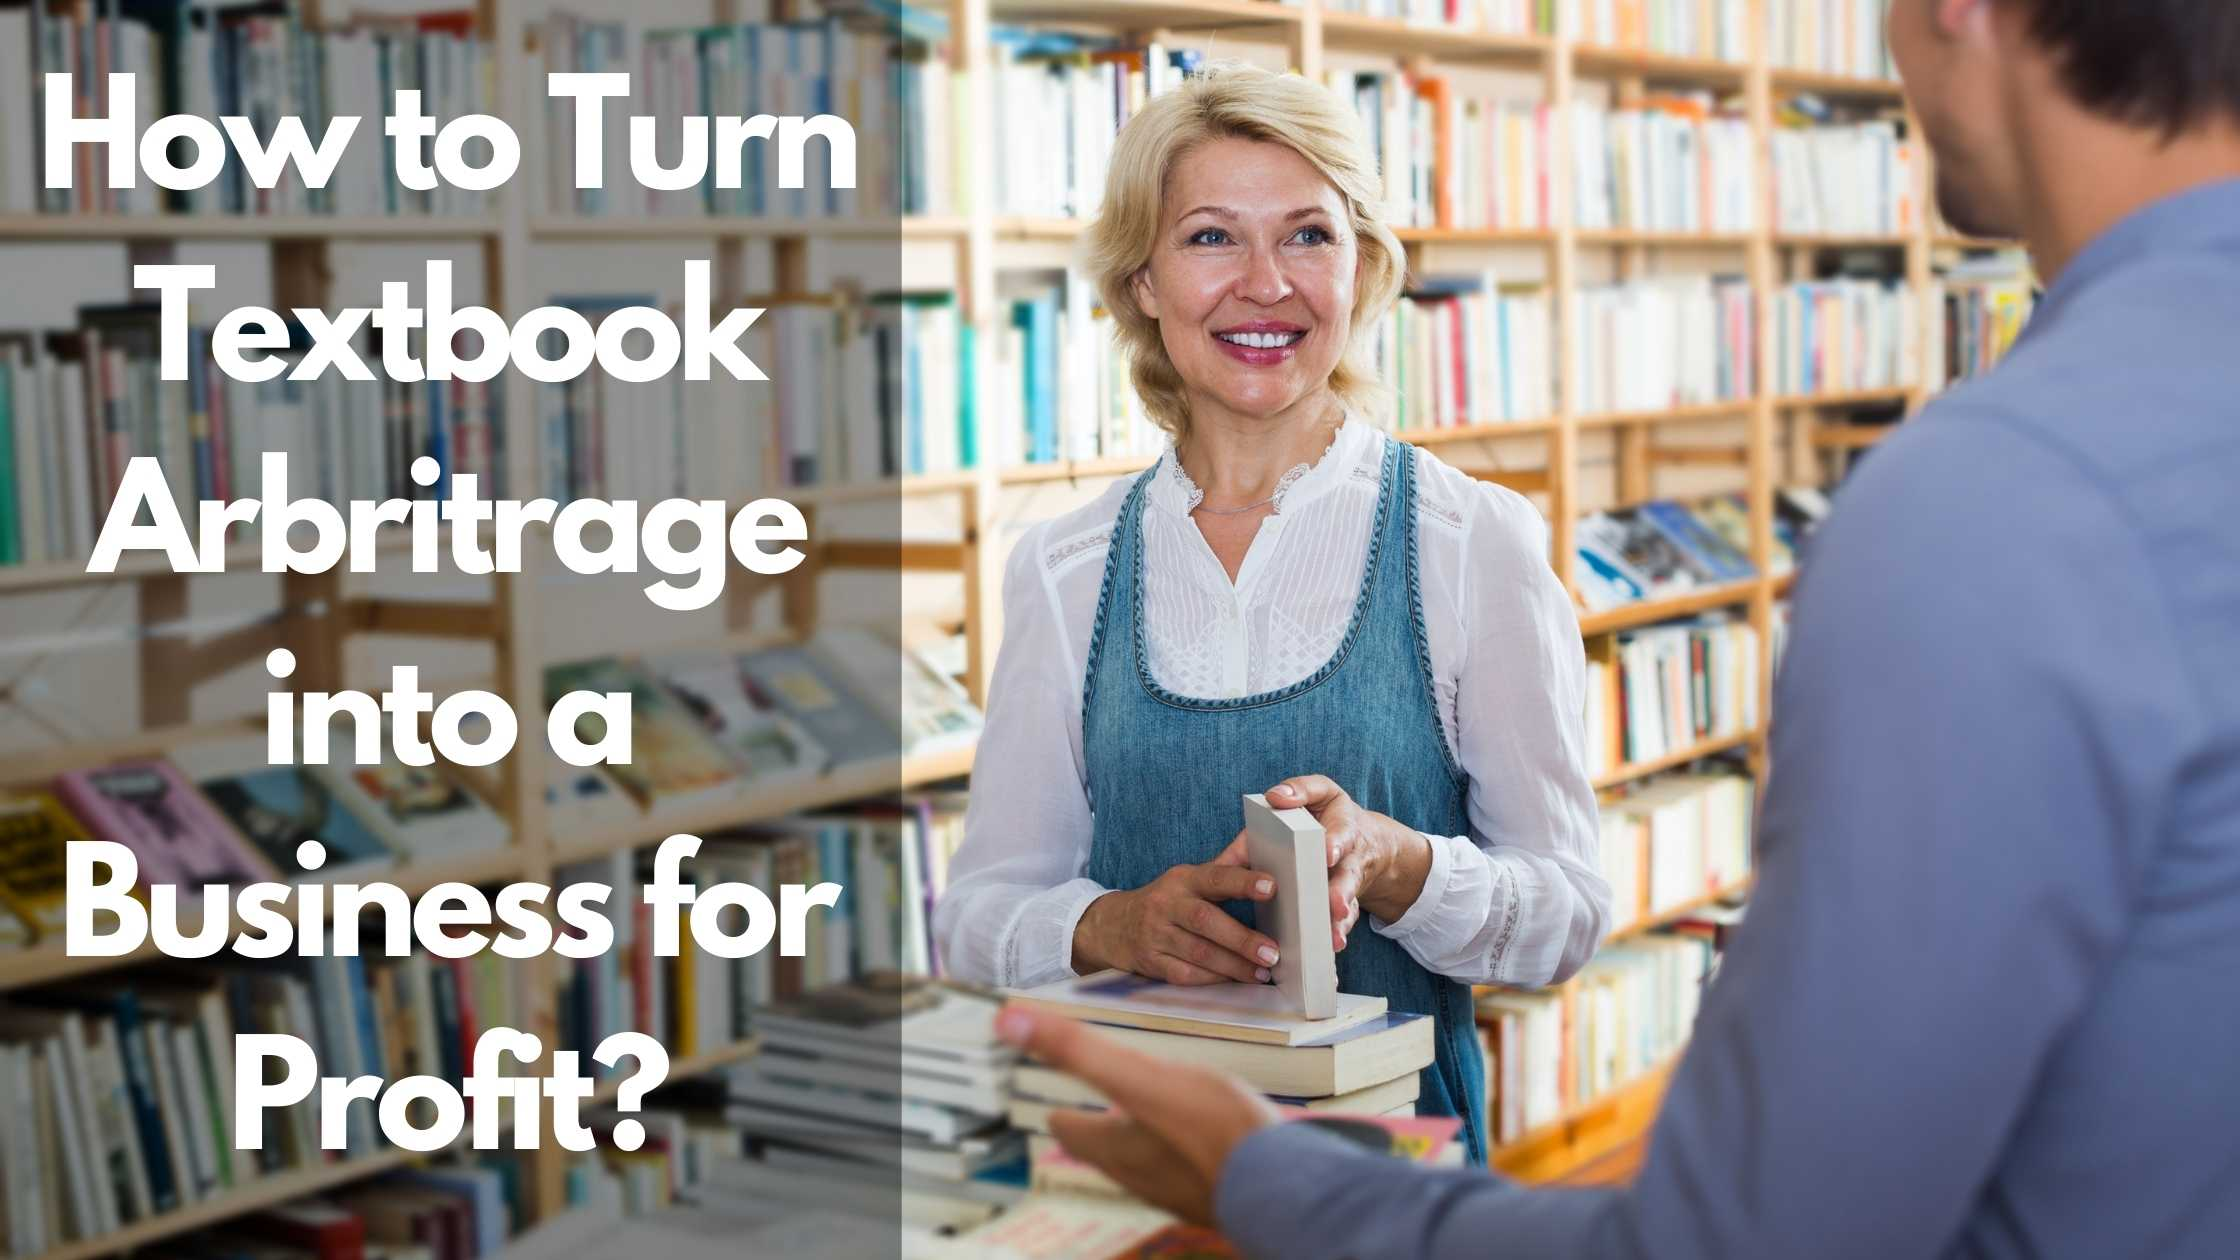 How to turn textbook arbritrage into a business for profit